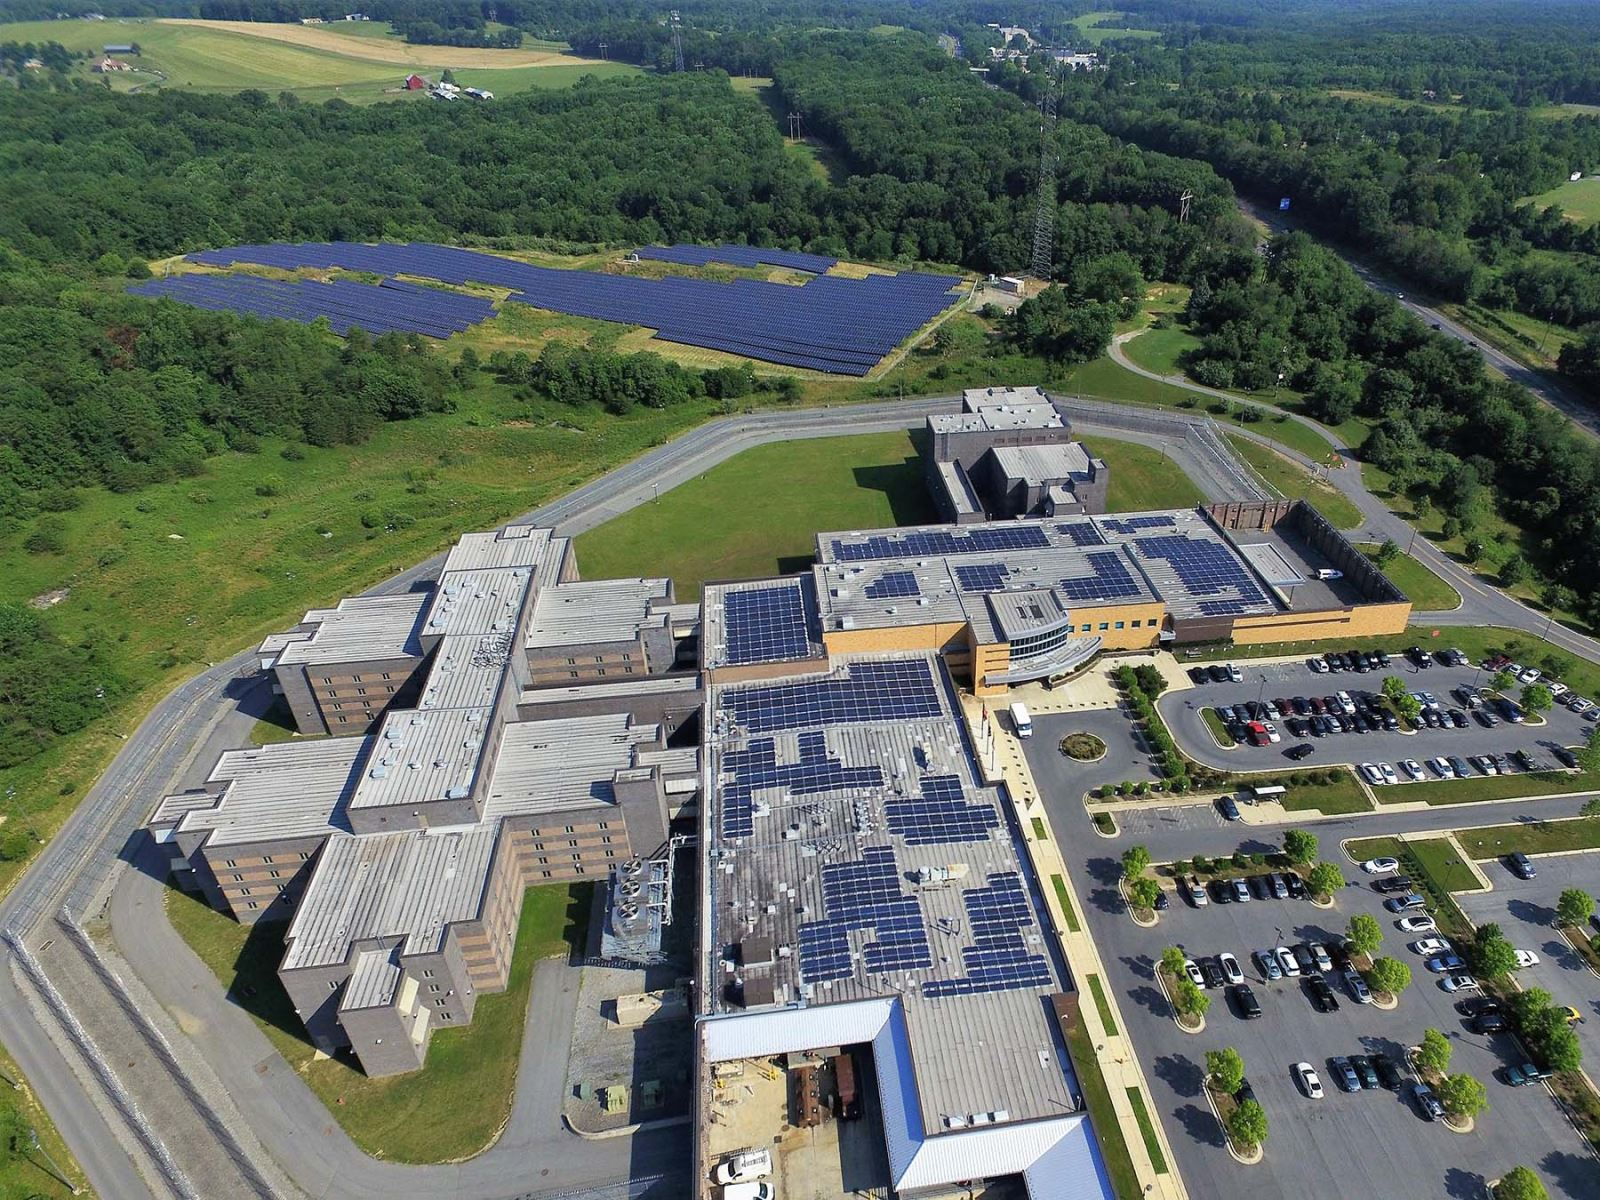 Montgomery County Correctional Facility Solar Panels Overview